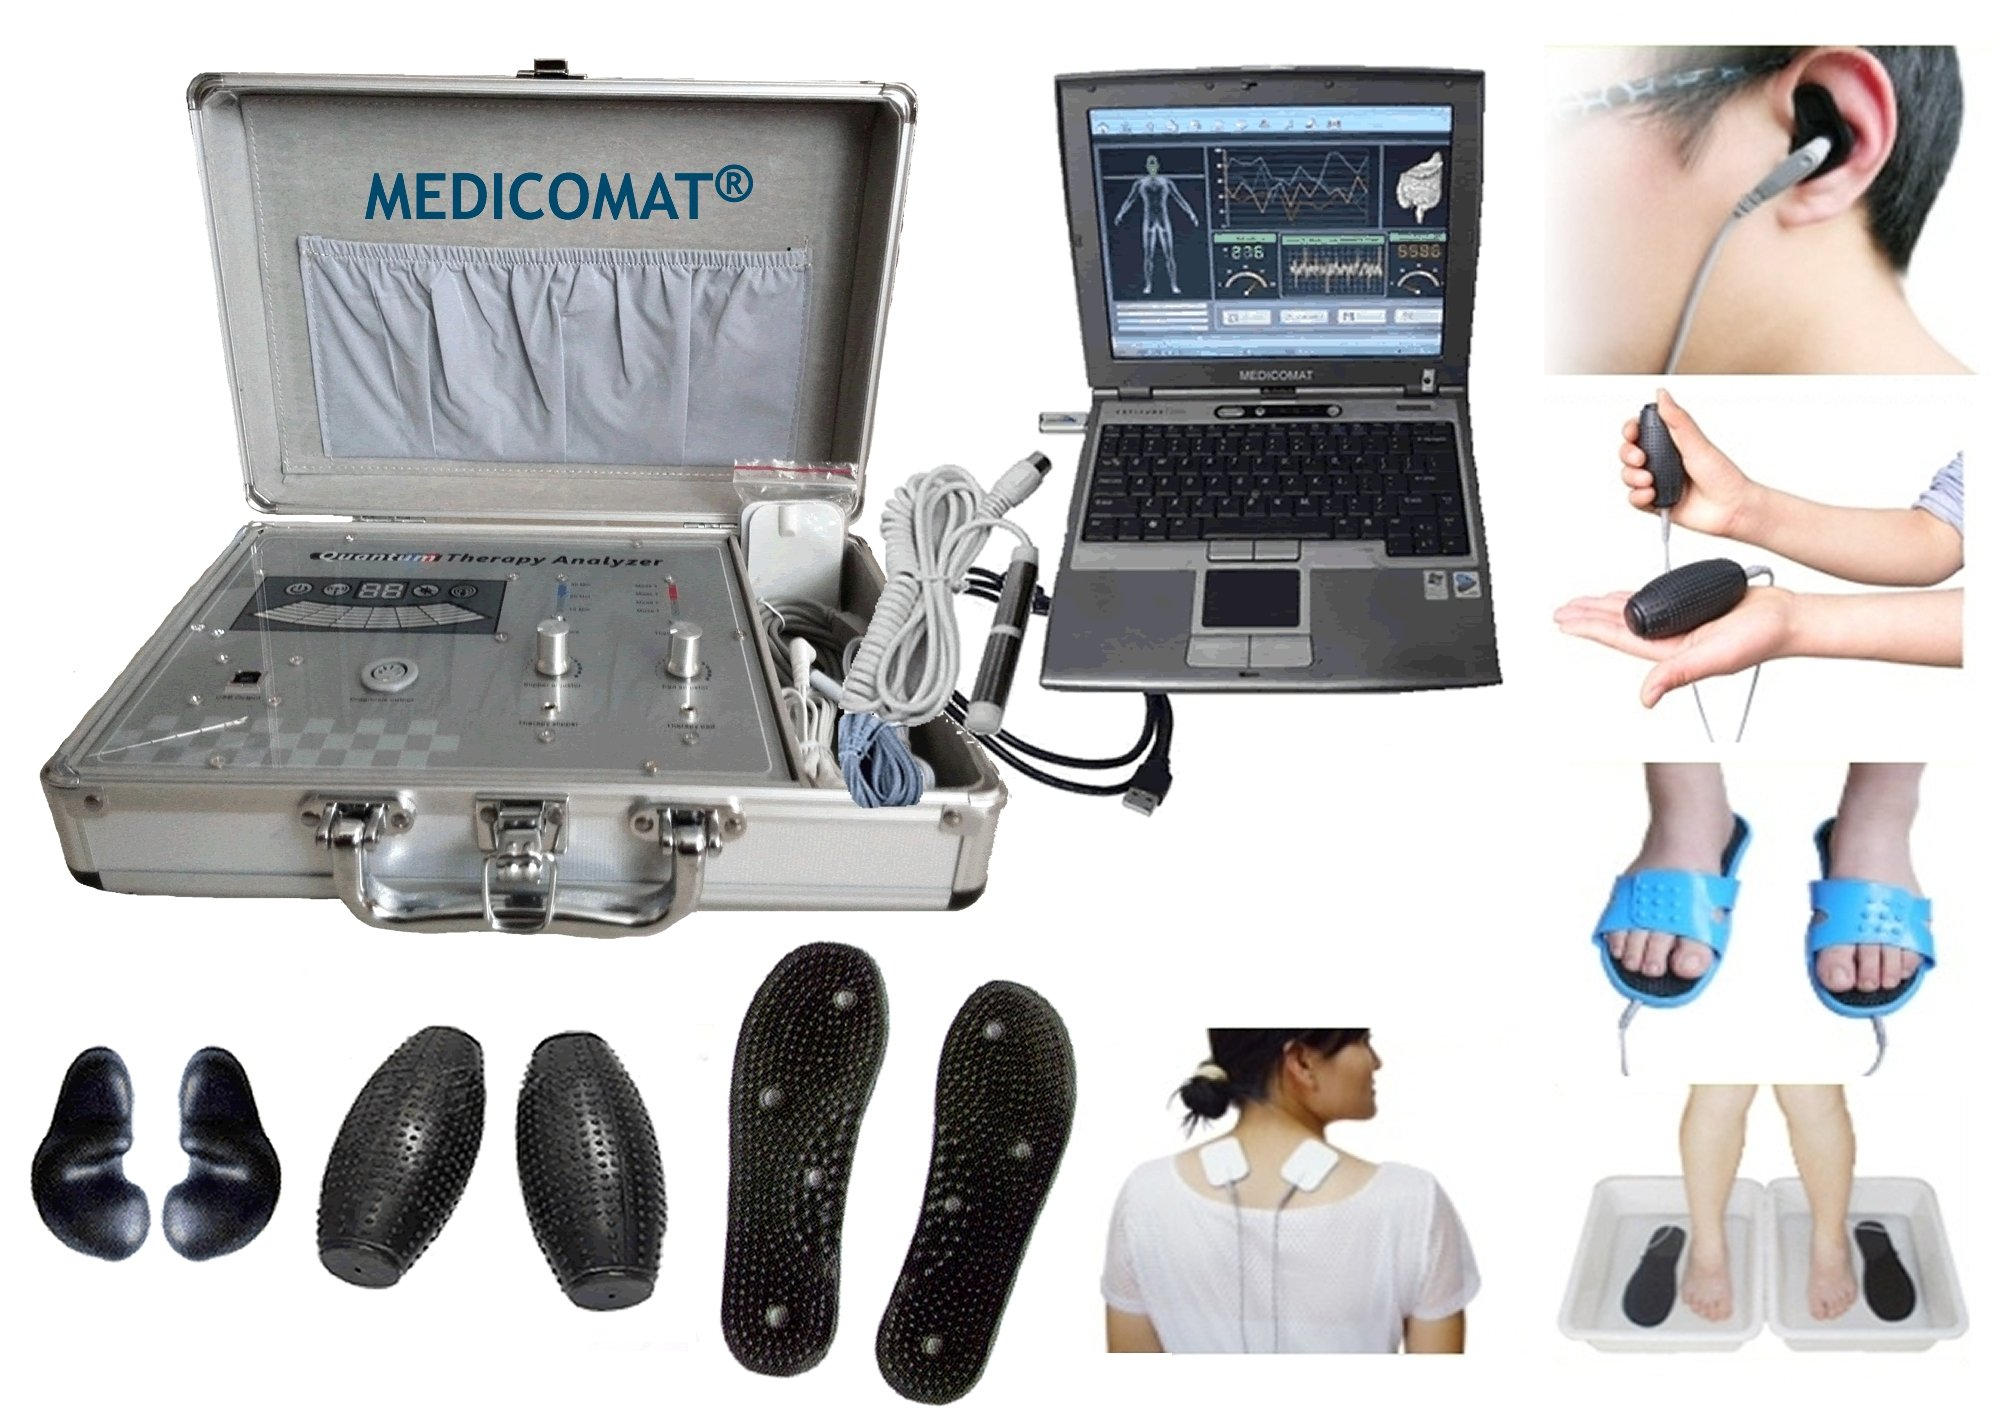 Health Check Analyzer System Medicomat Computer Accessories by Medicomat